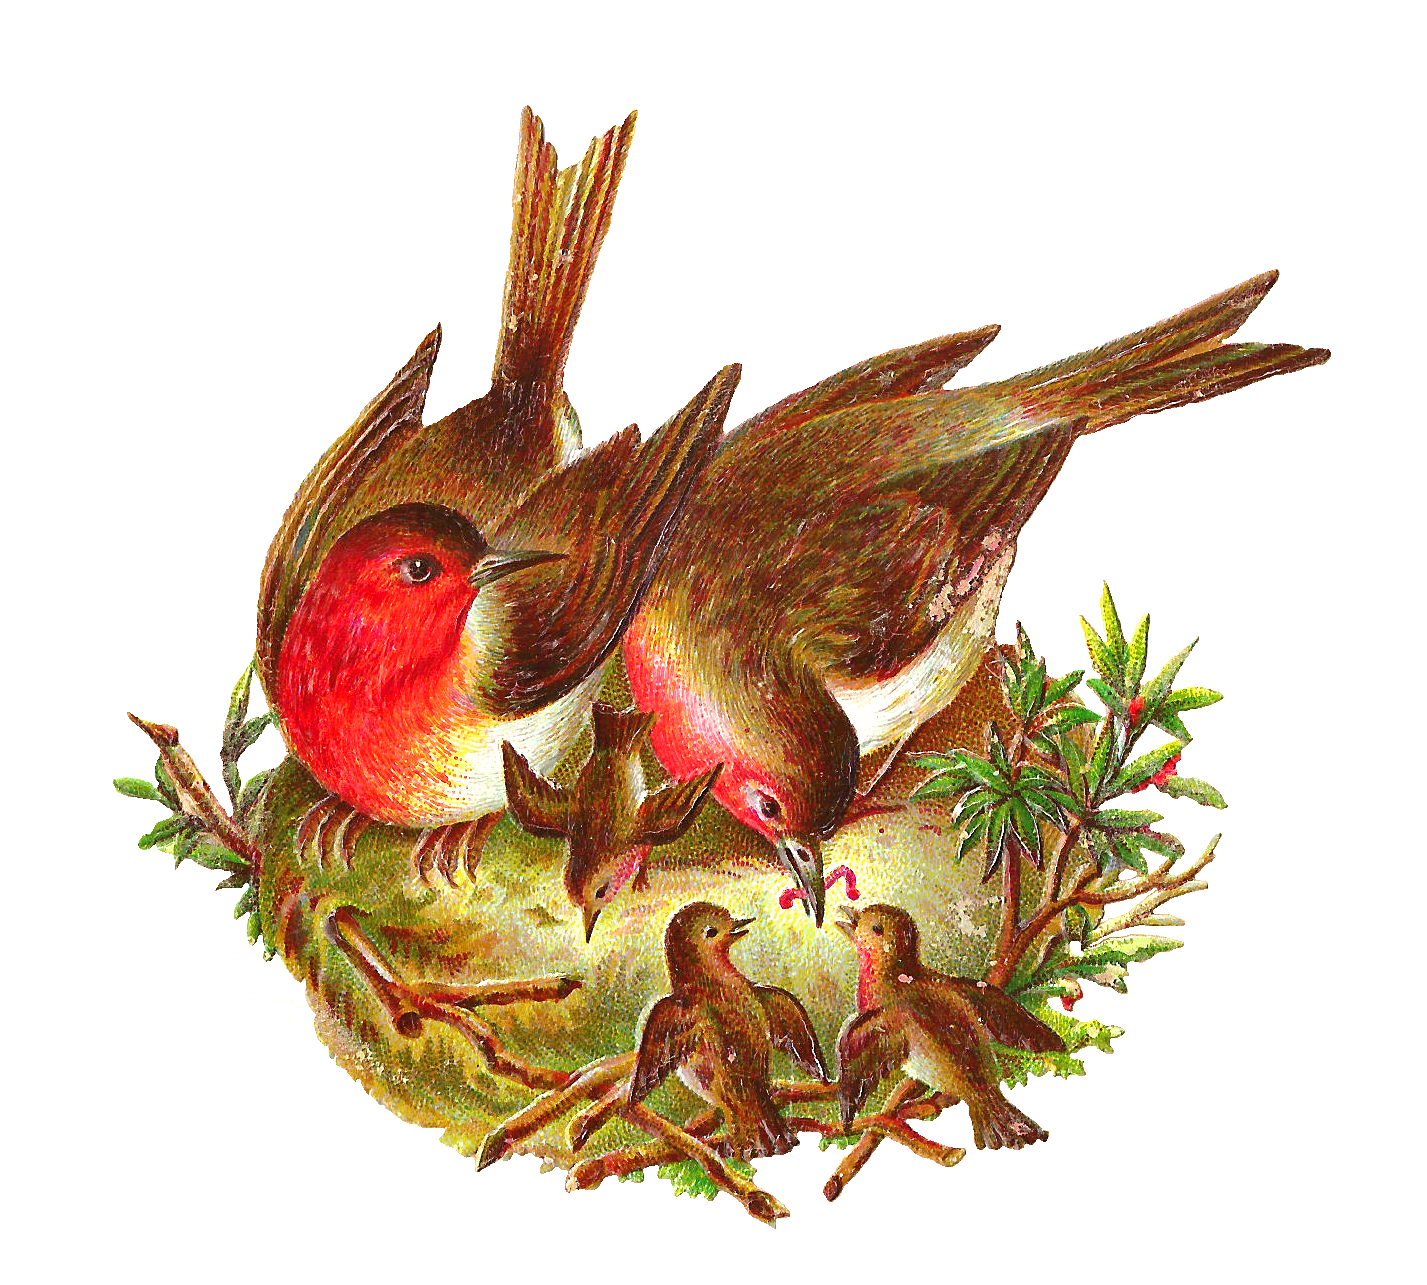 Nest PNG - 23501